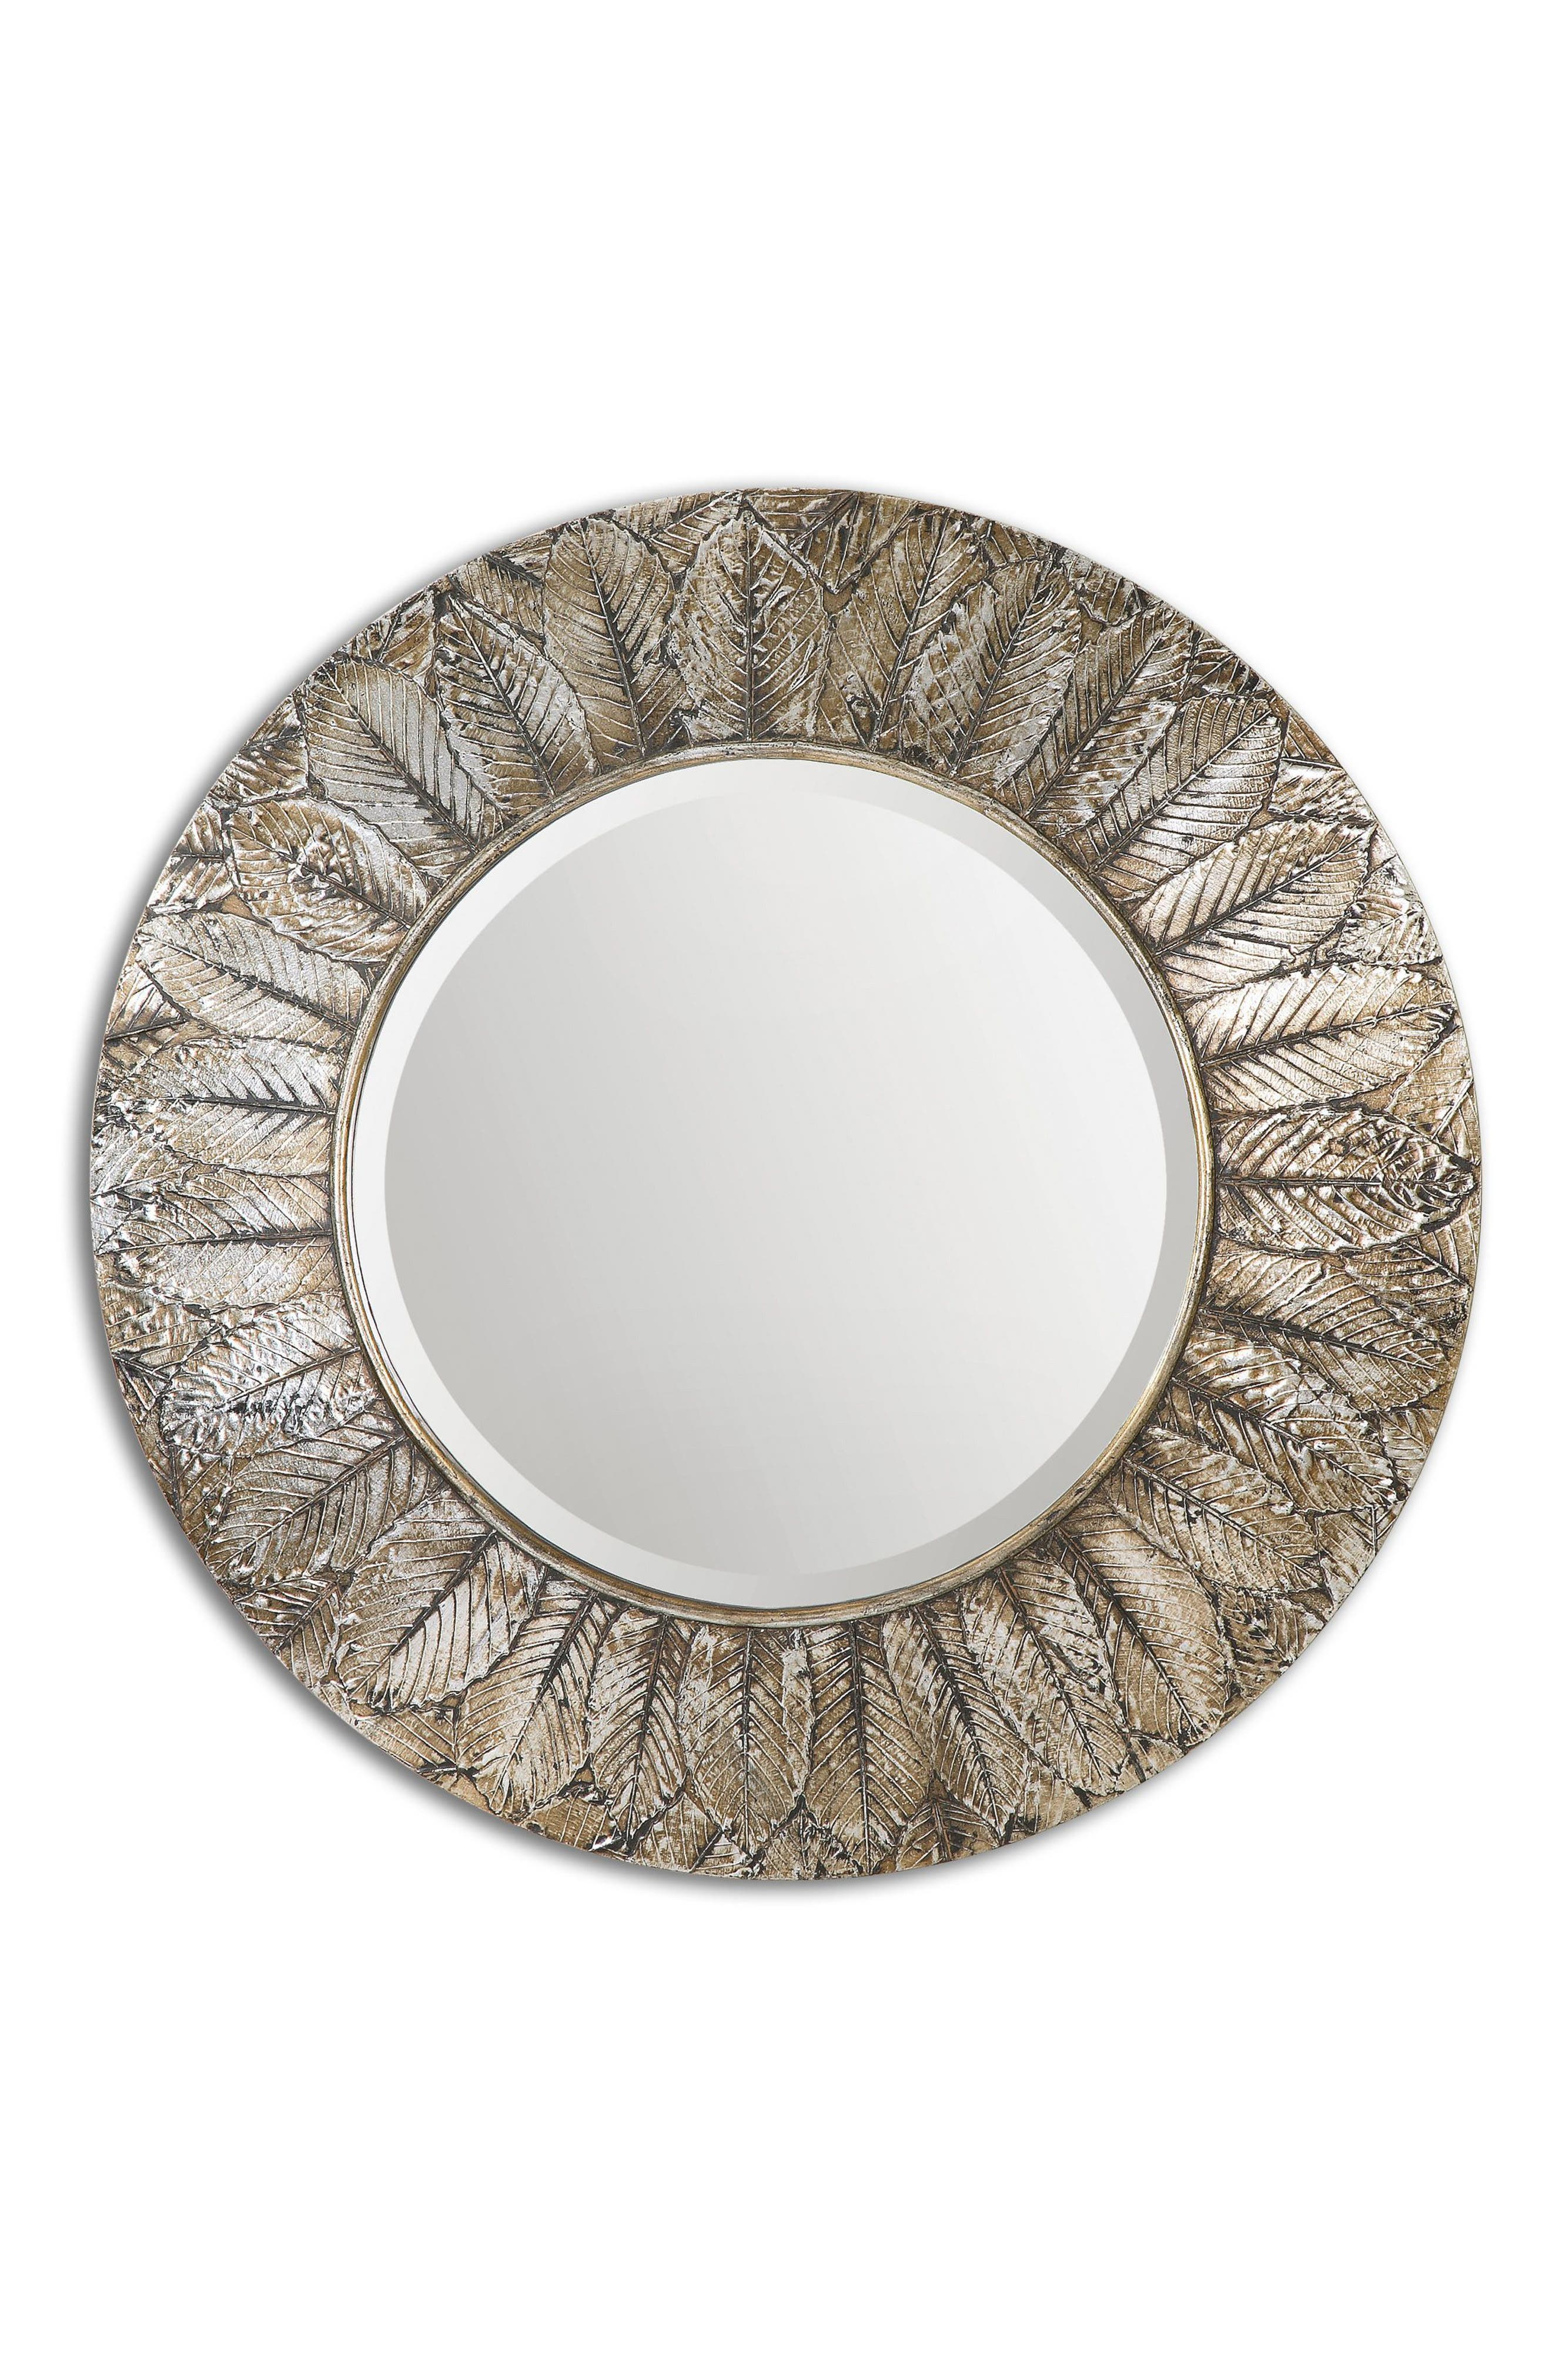 Alternate Image 1 Selected - Uttermost Foliage Wall Mirror